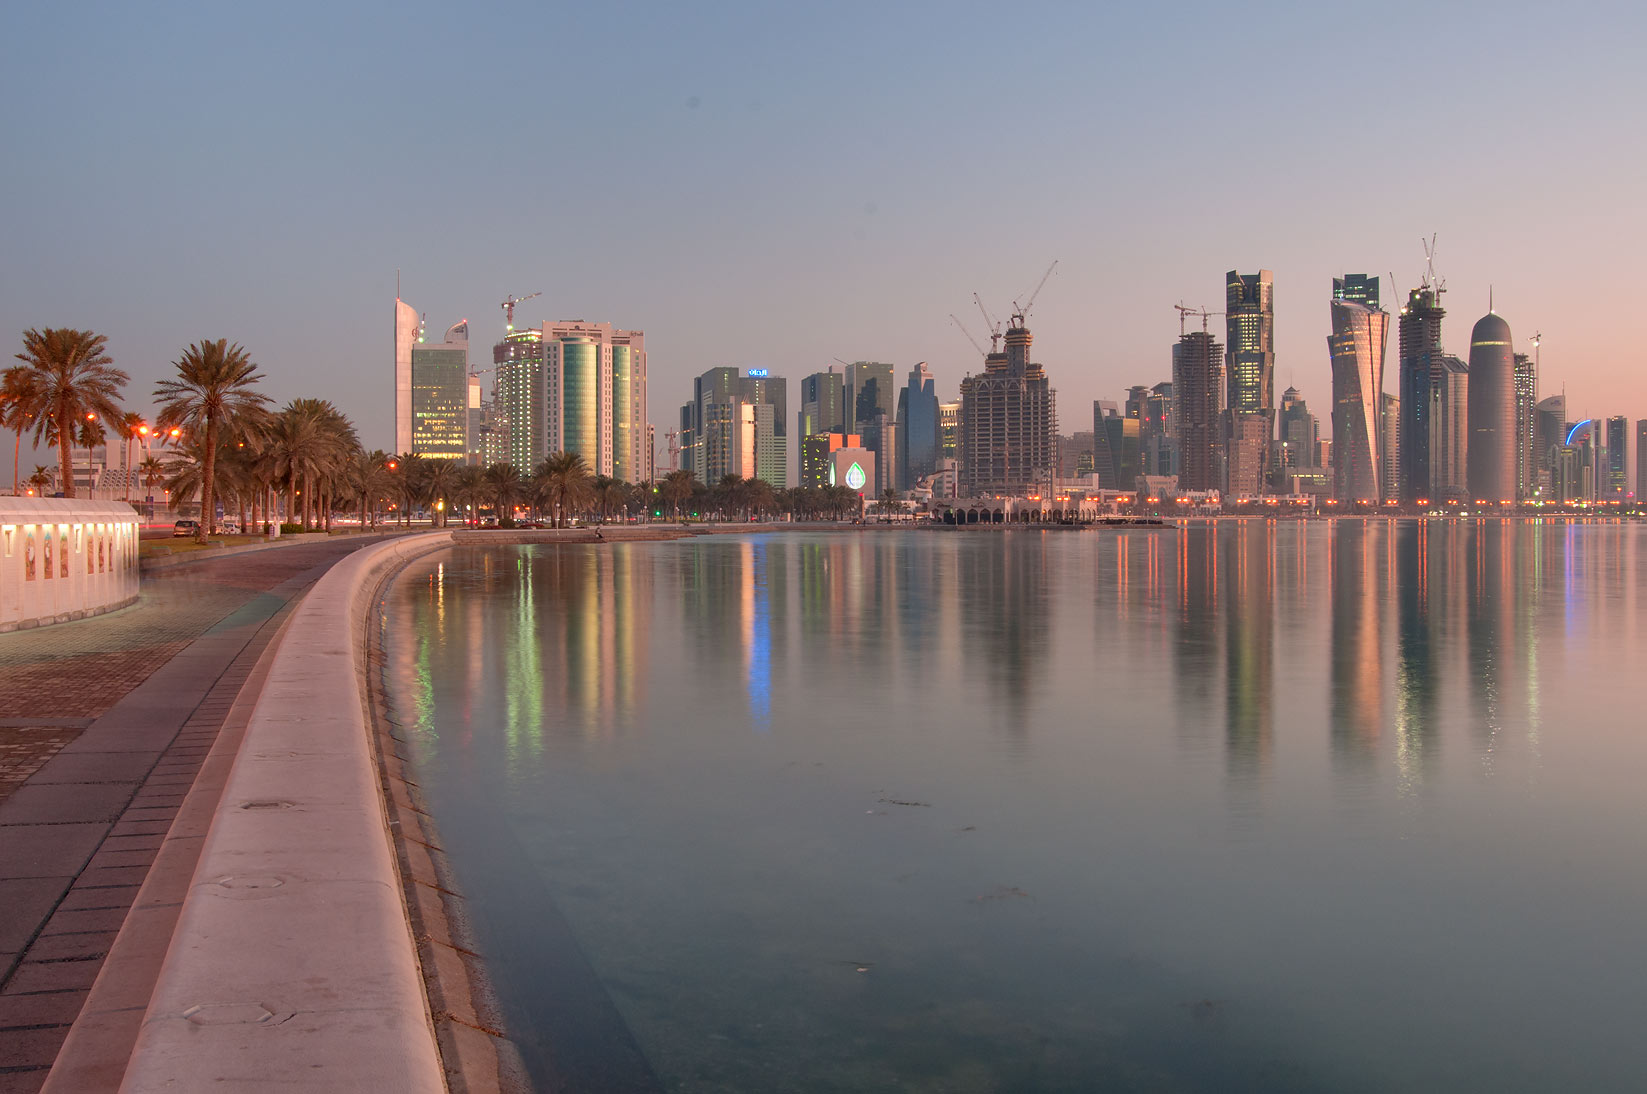 View of West Bay from Corniche, at Al Bida Roundabout. Doha, Qatar